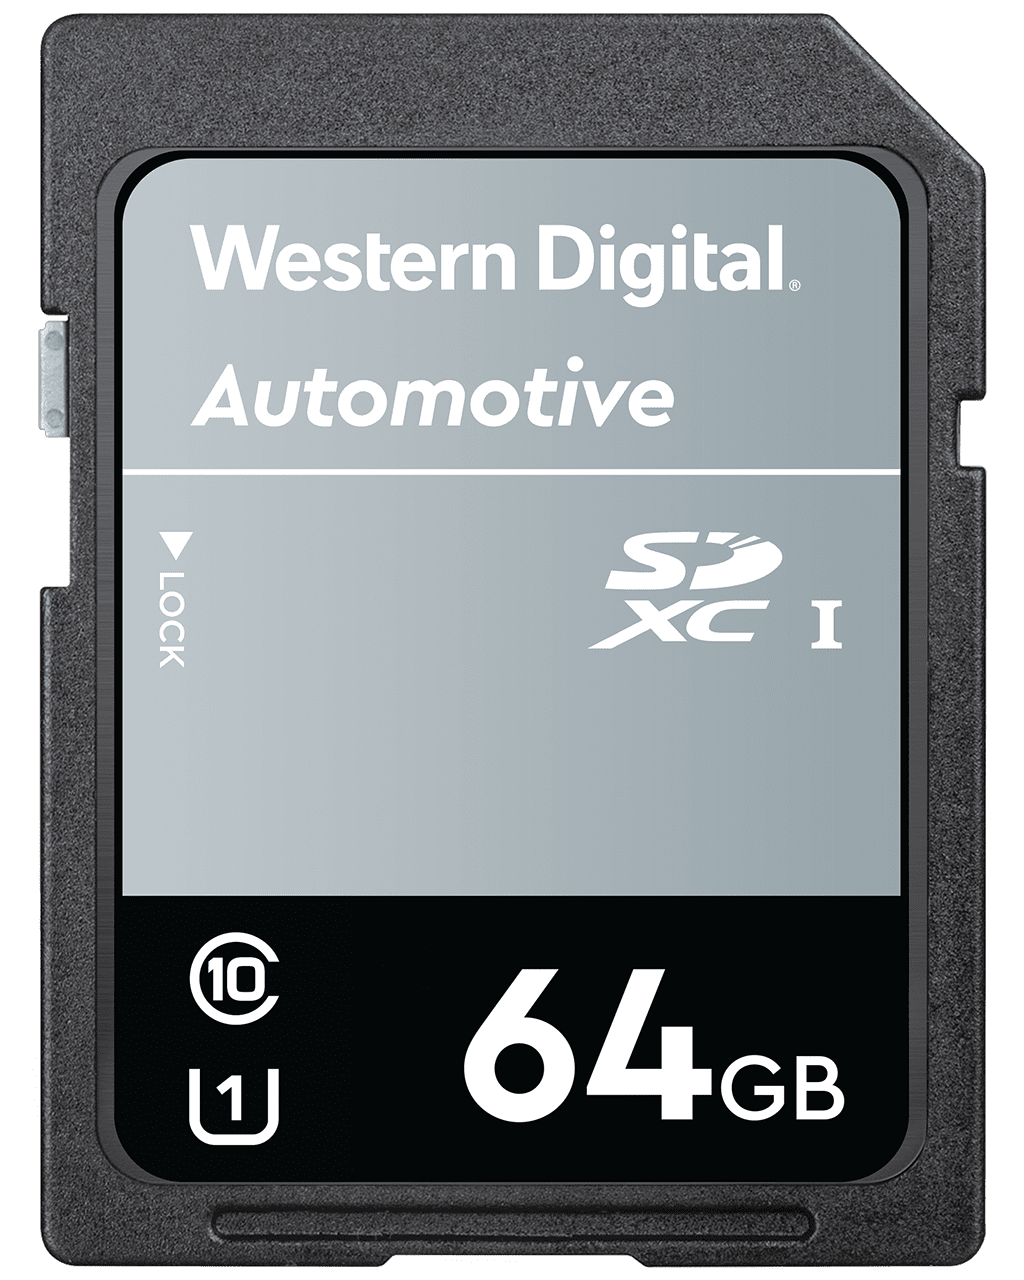 product-hero-image-automotive-sd-cards-western-digital